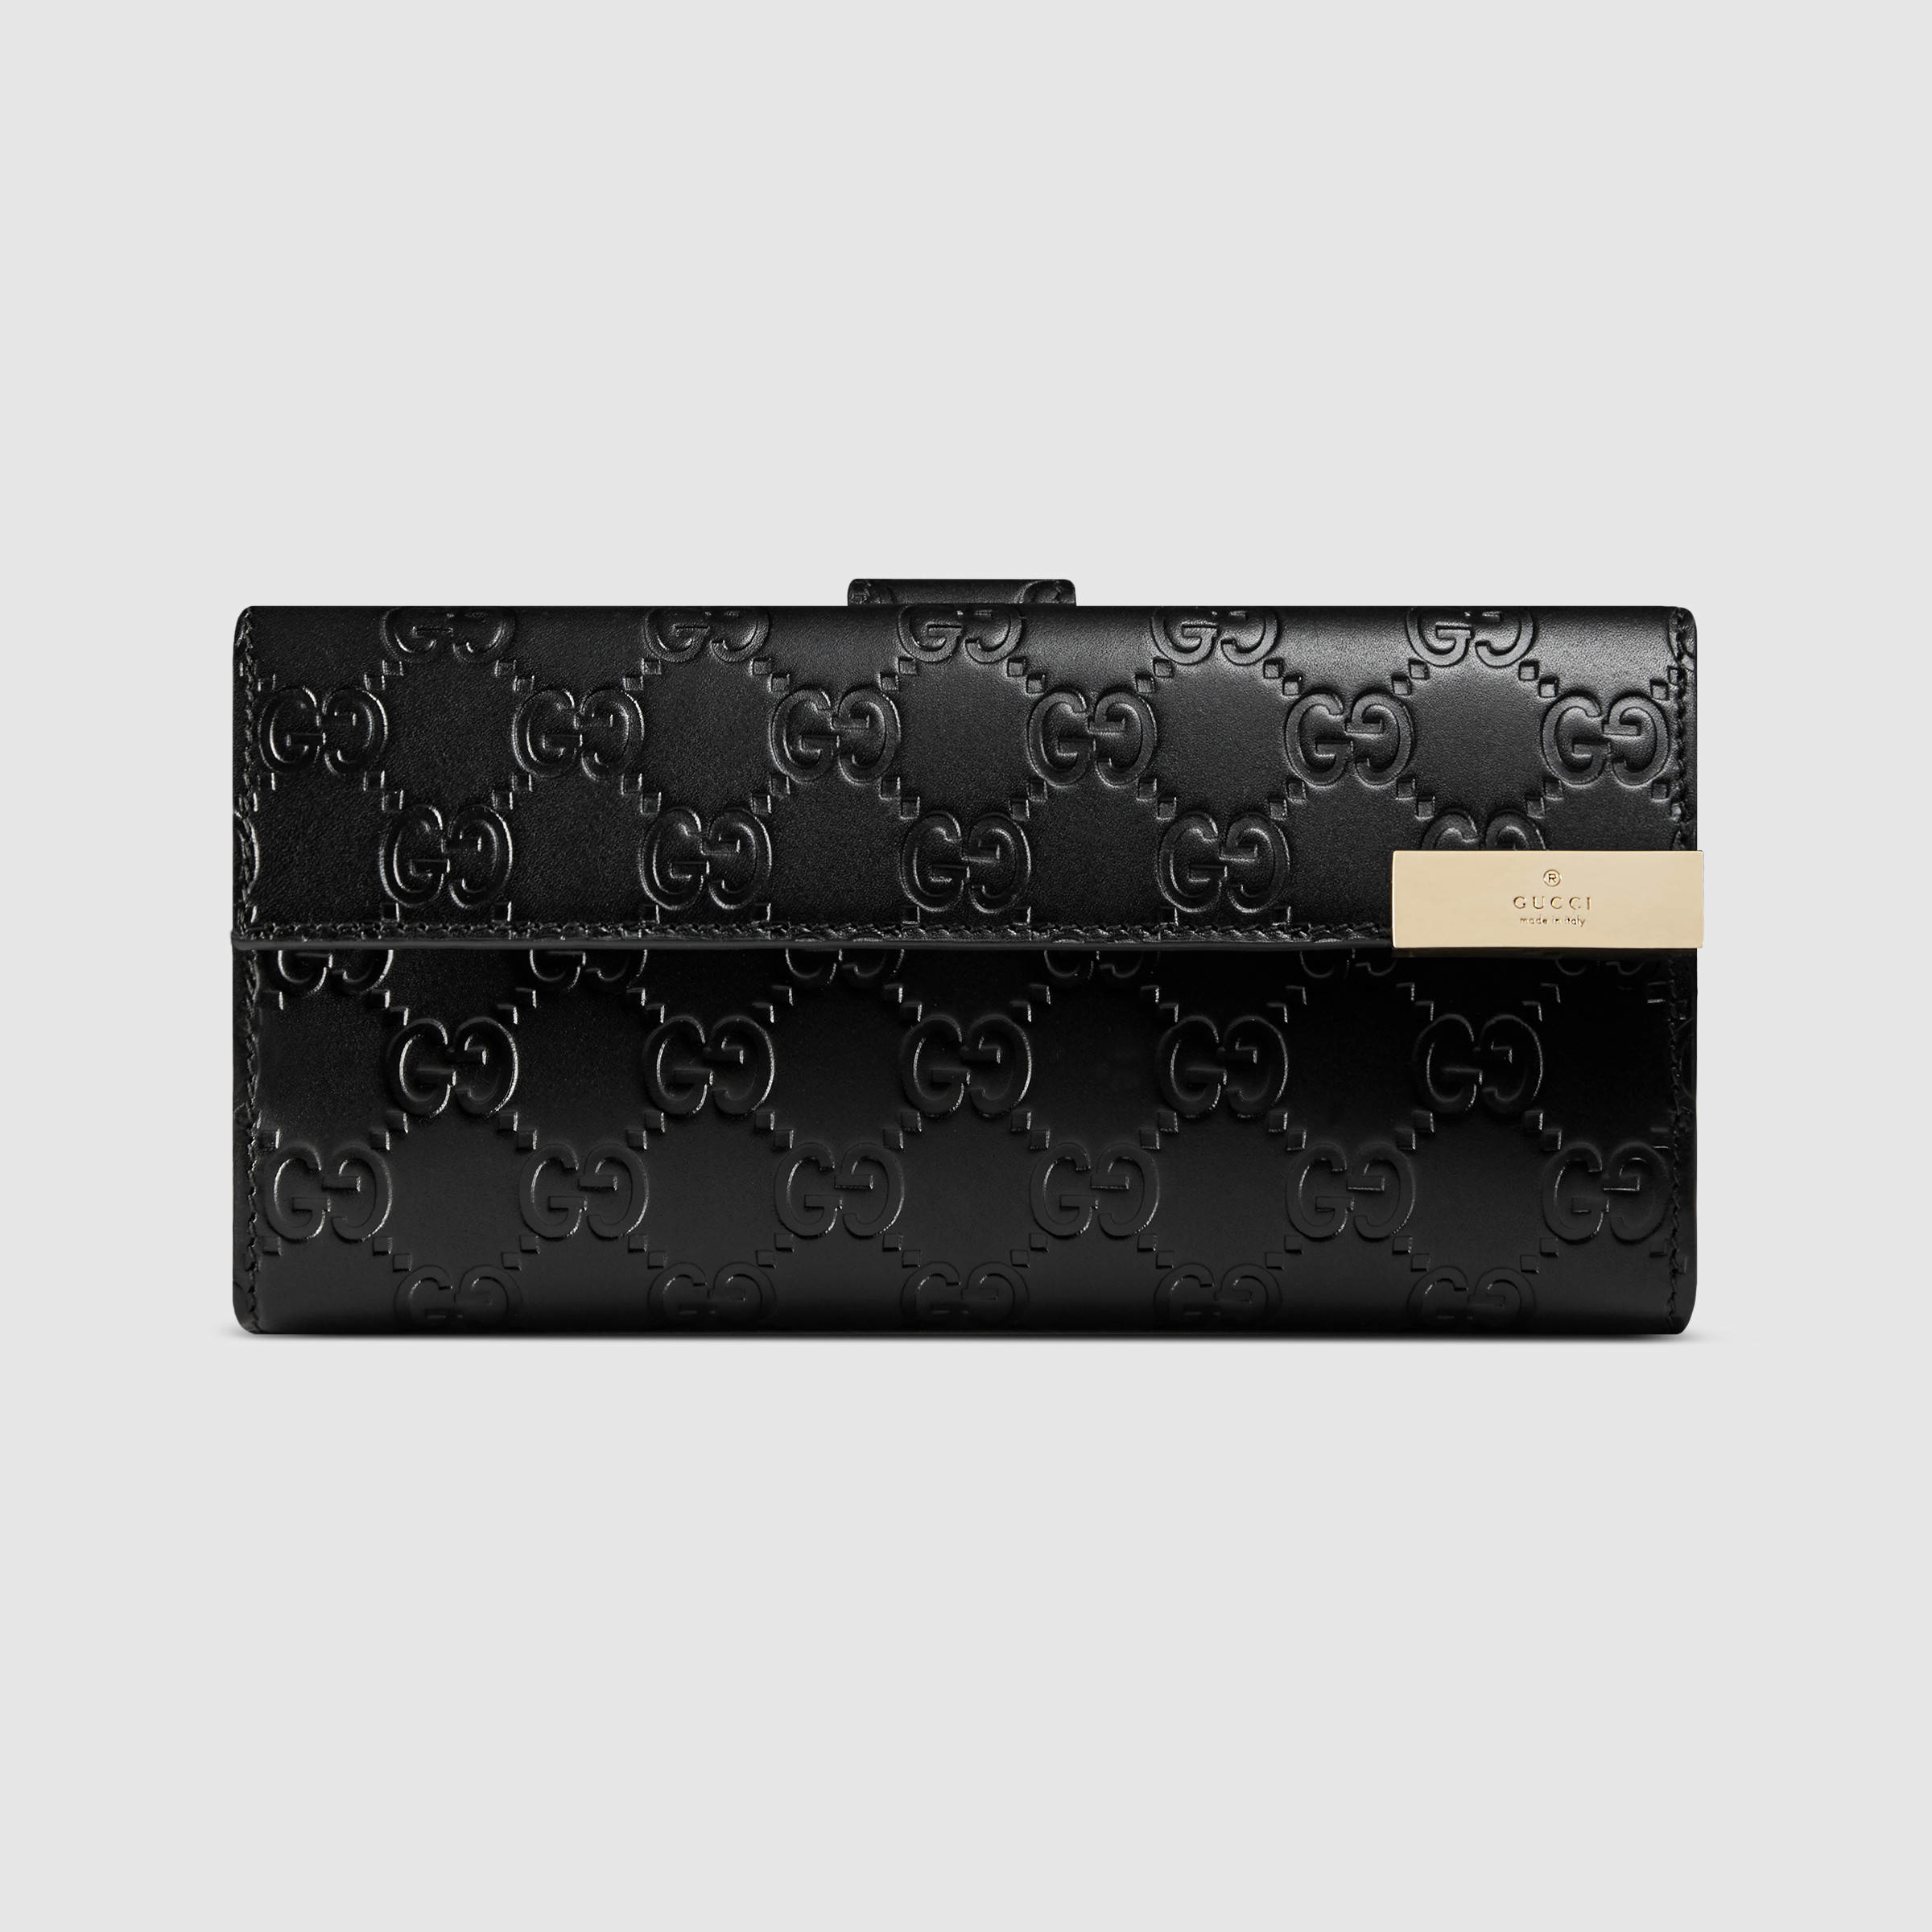 75a593dd3607 Gucci Signature Continental Wallet Reddit | Stanford Center for ...